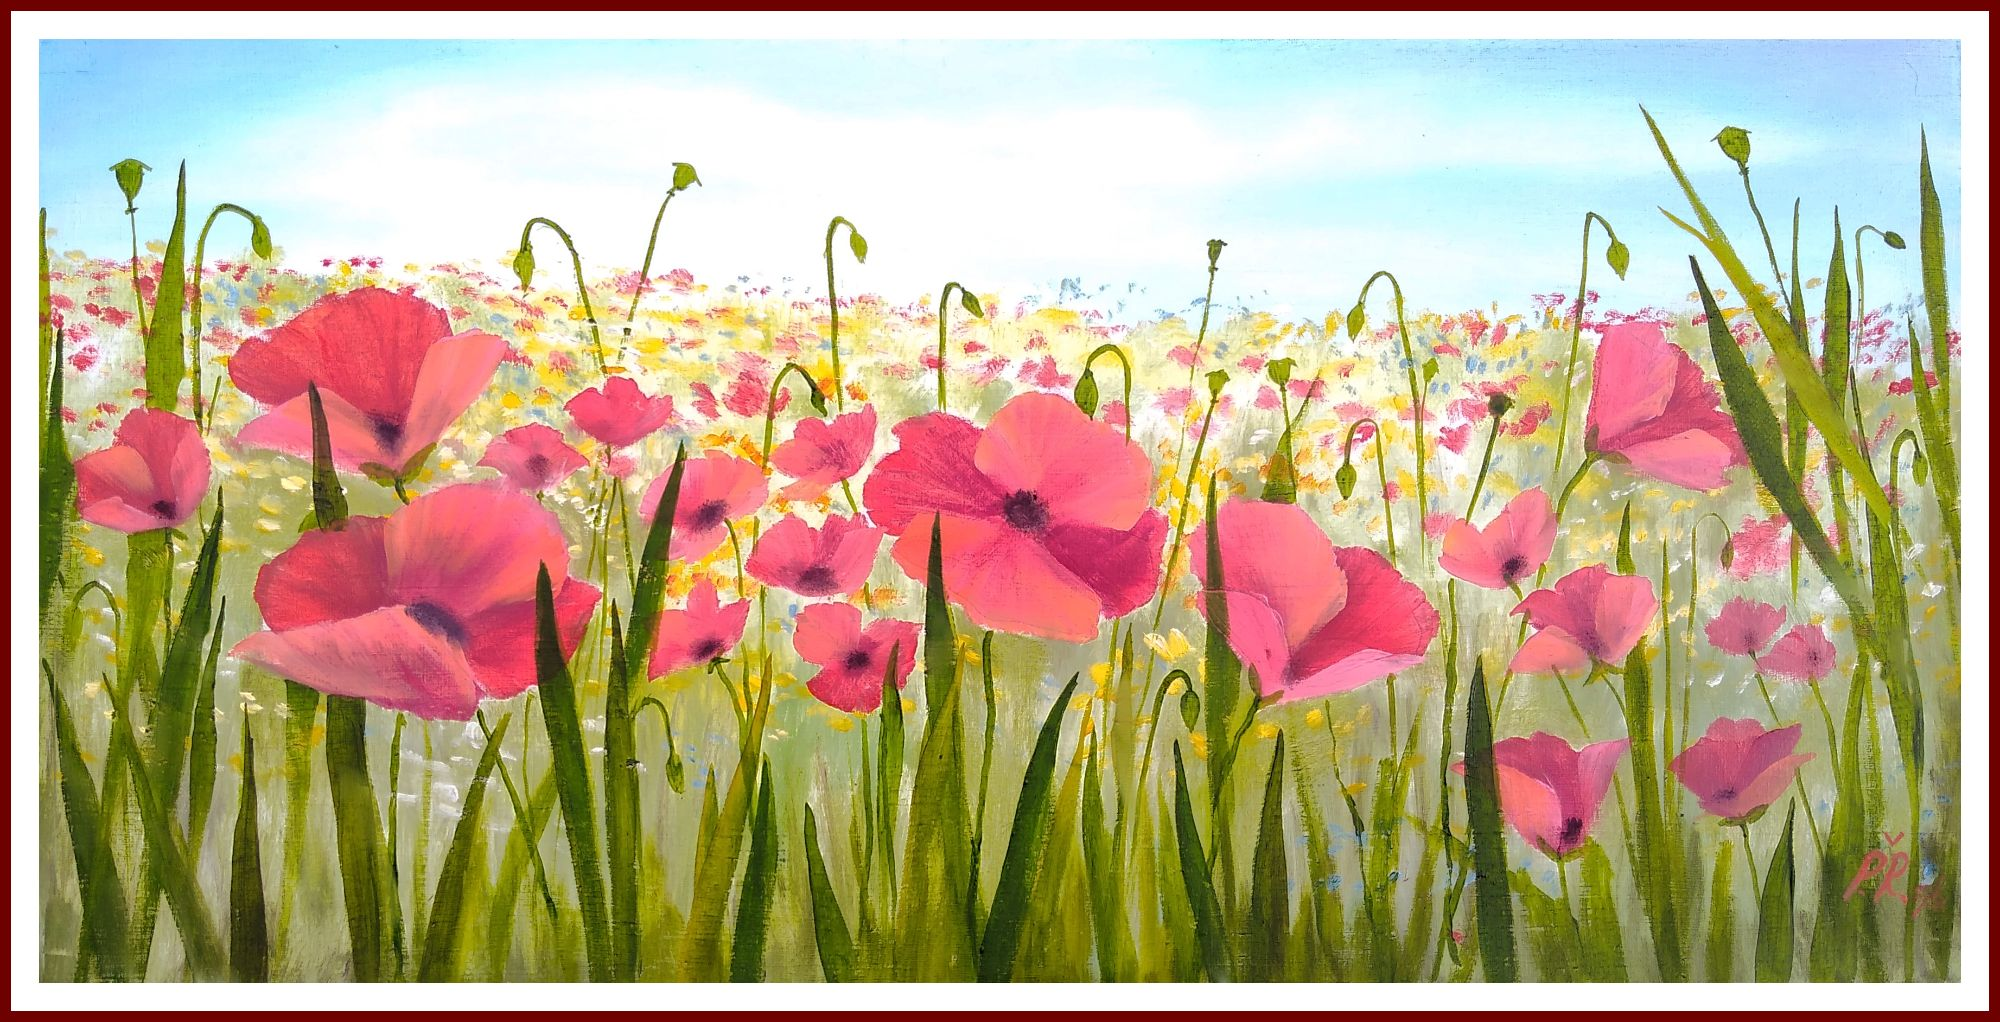 Field Poppies - bright red poppies